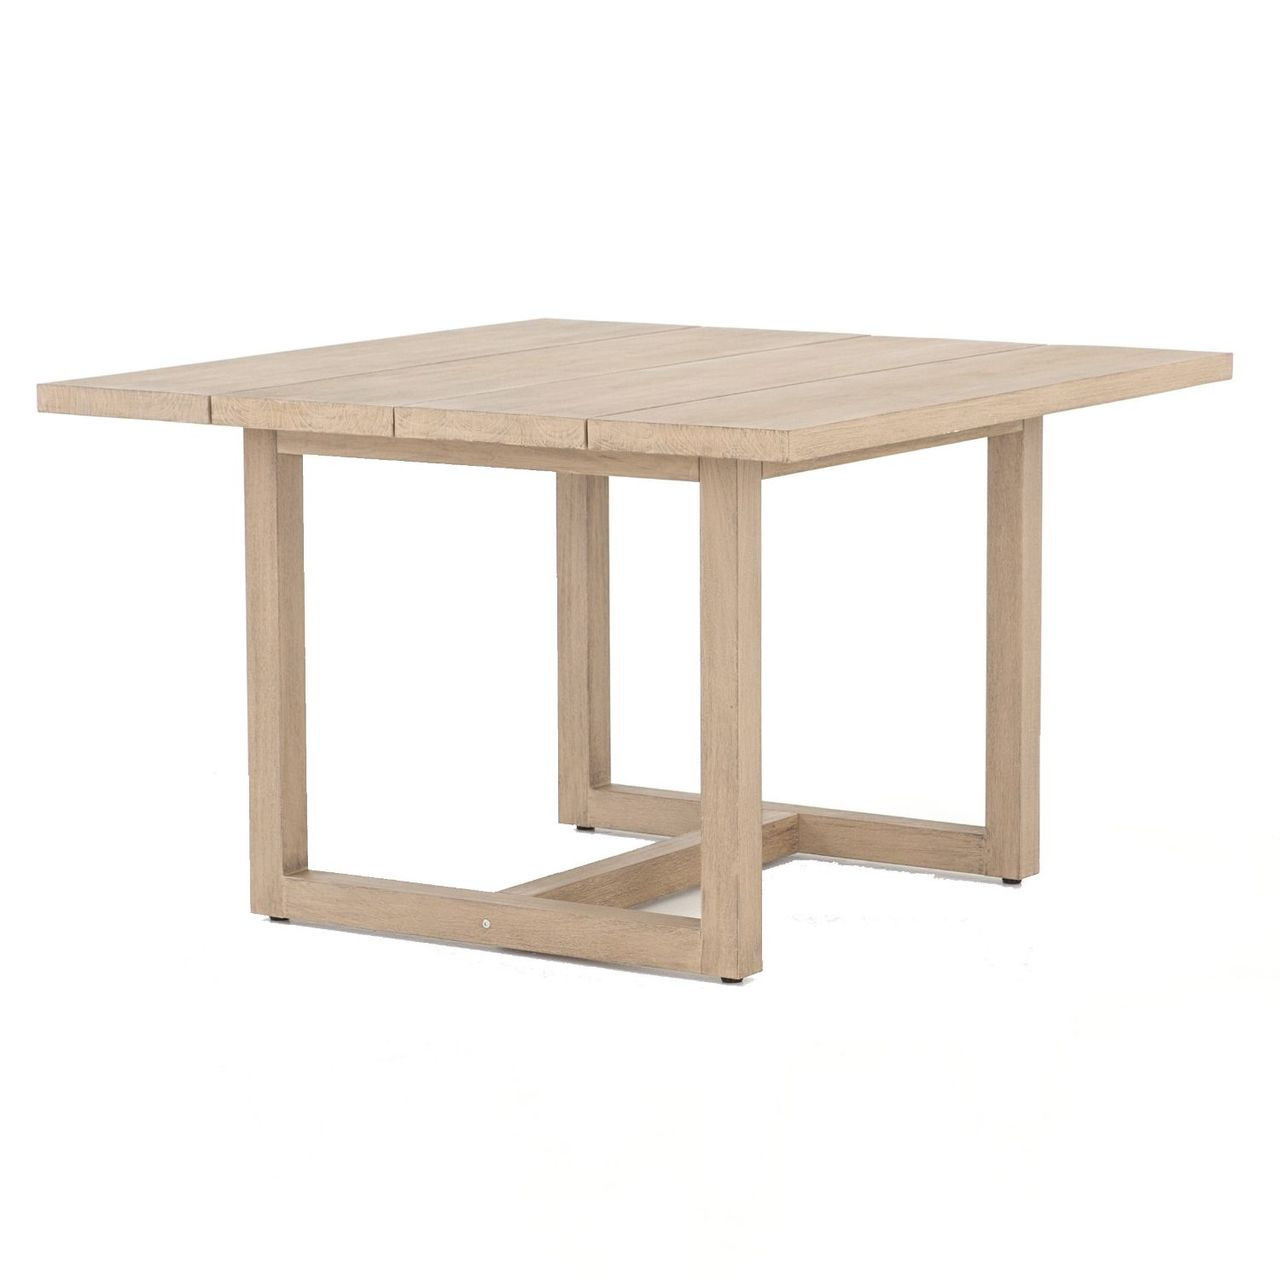 Stapleton Brown Teak Wood Square Outdoor Dining Table 48 Zin Home